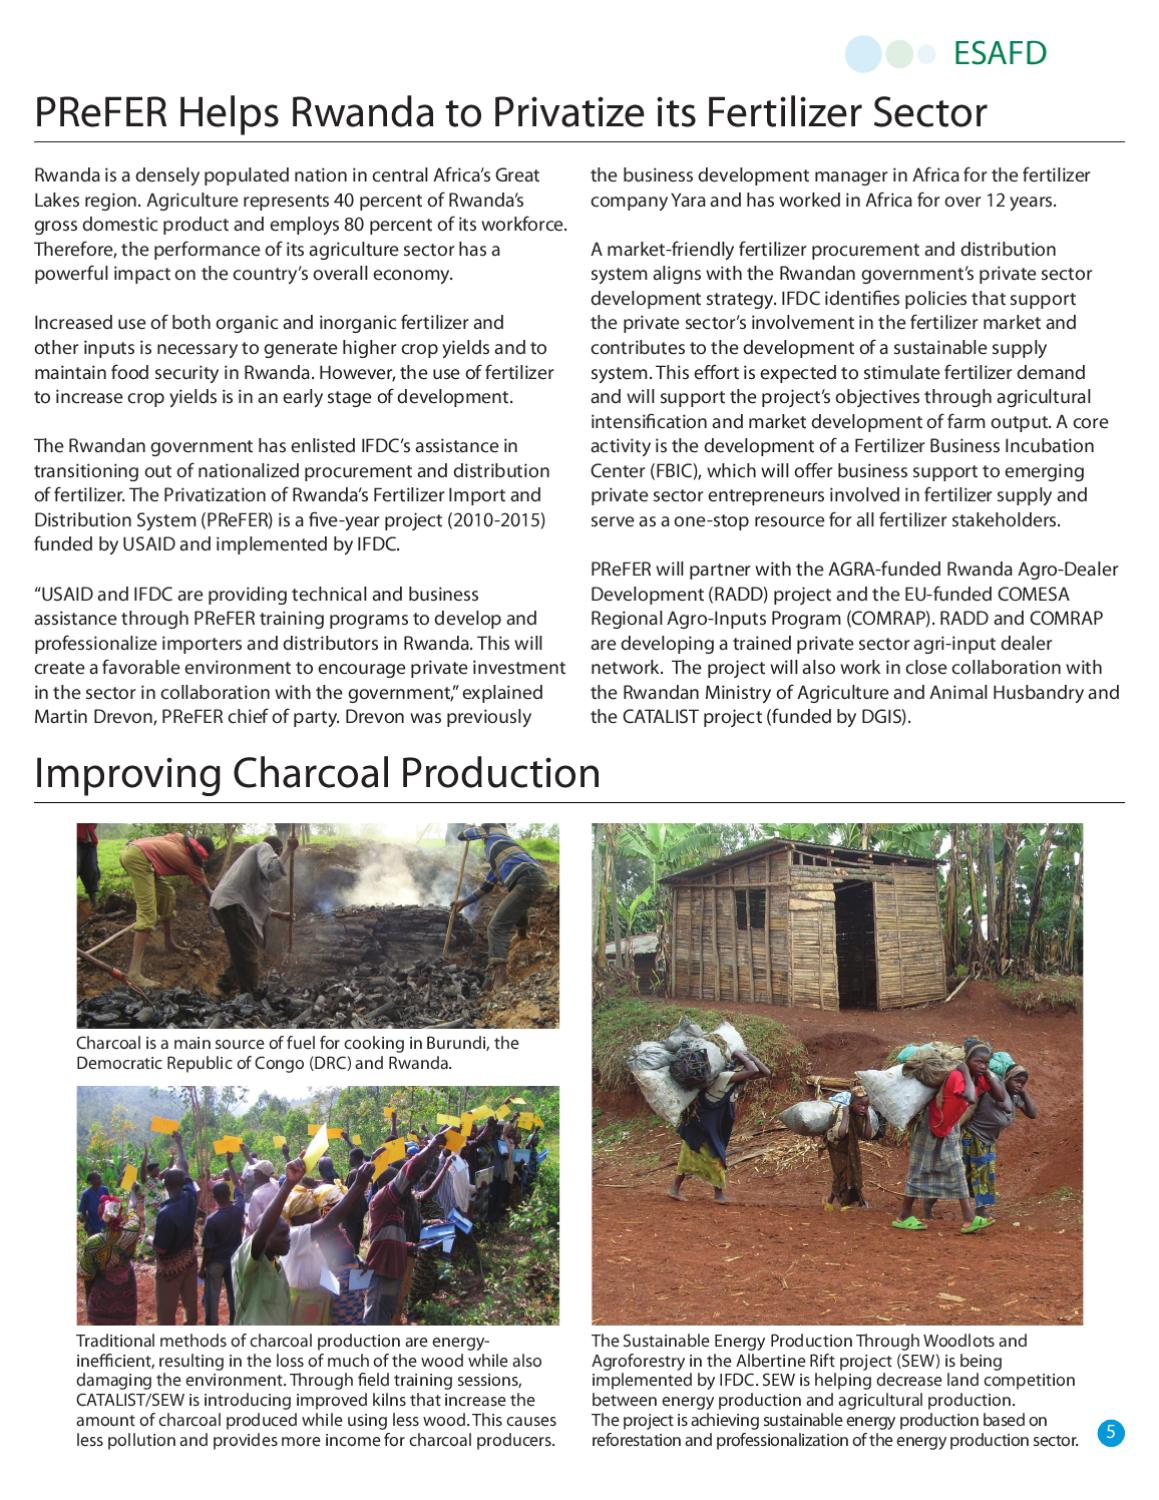 Improving Charcoal Production